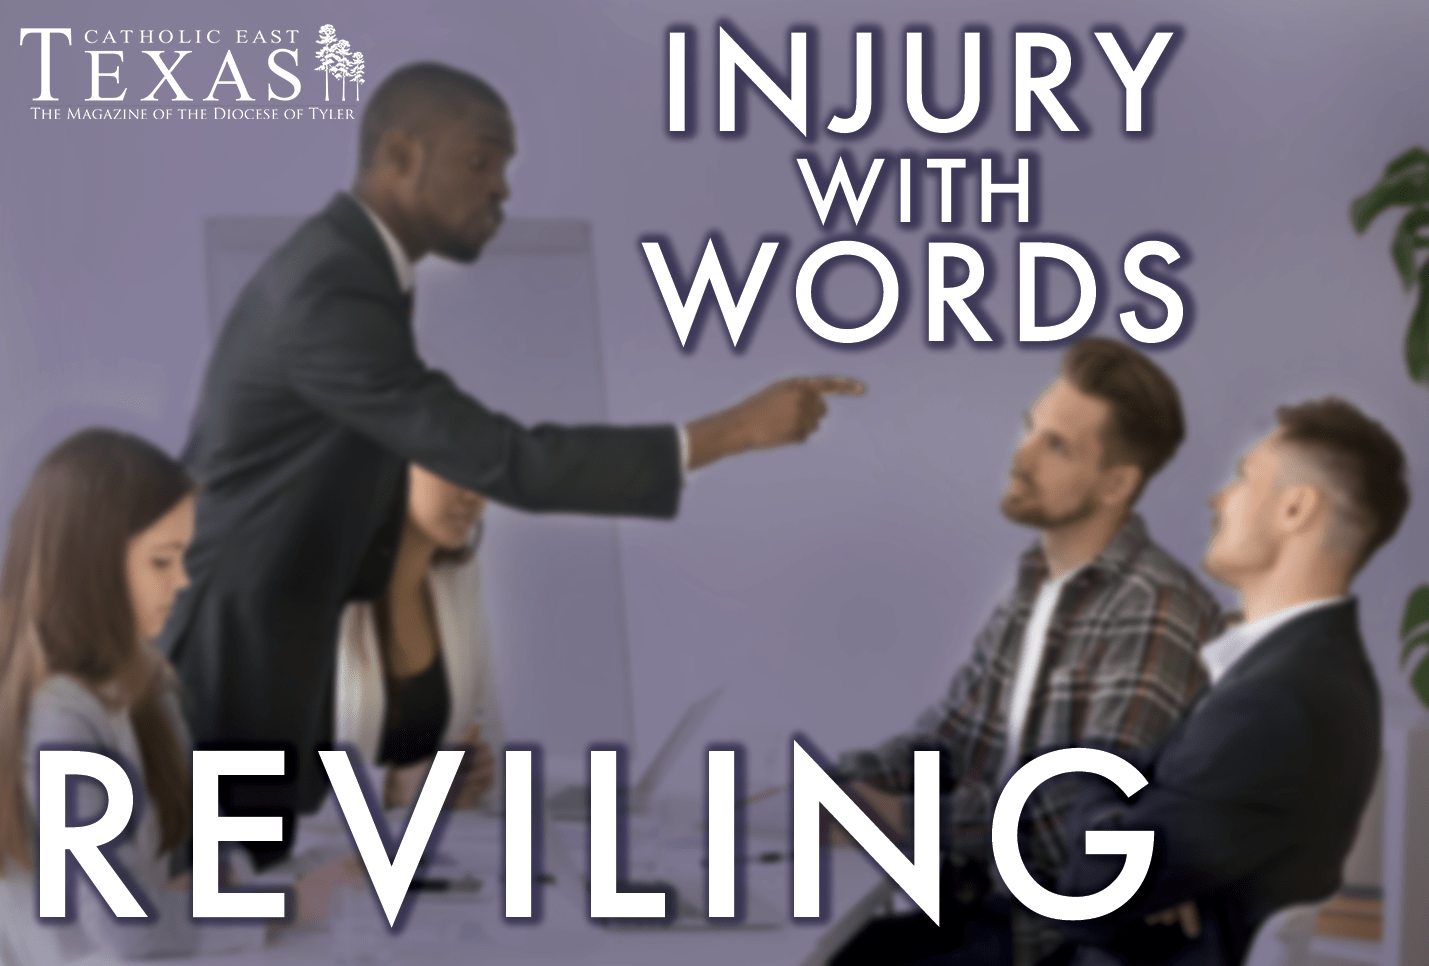 Injury with Words: Reviling